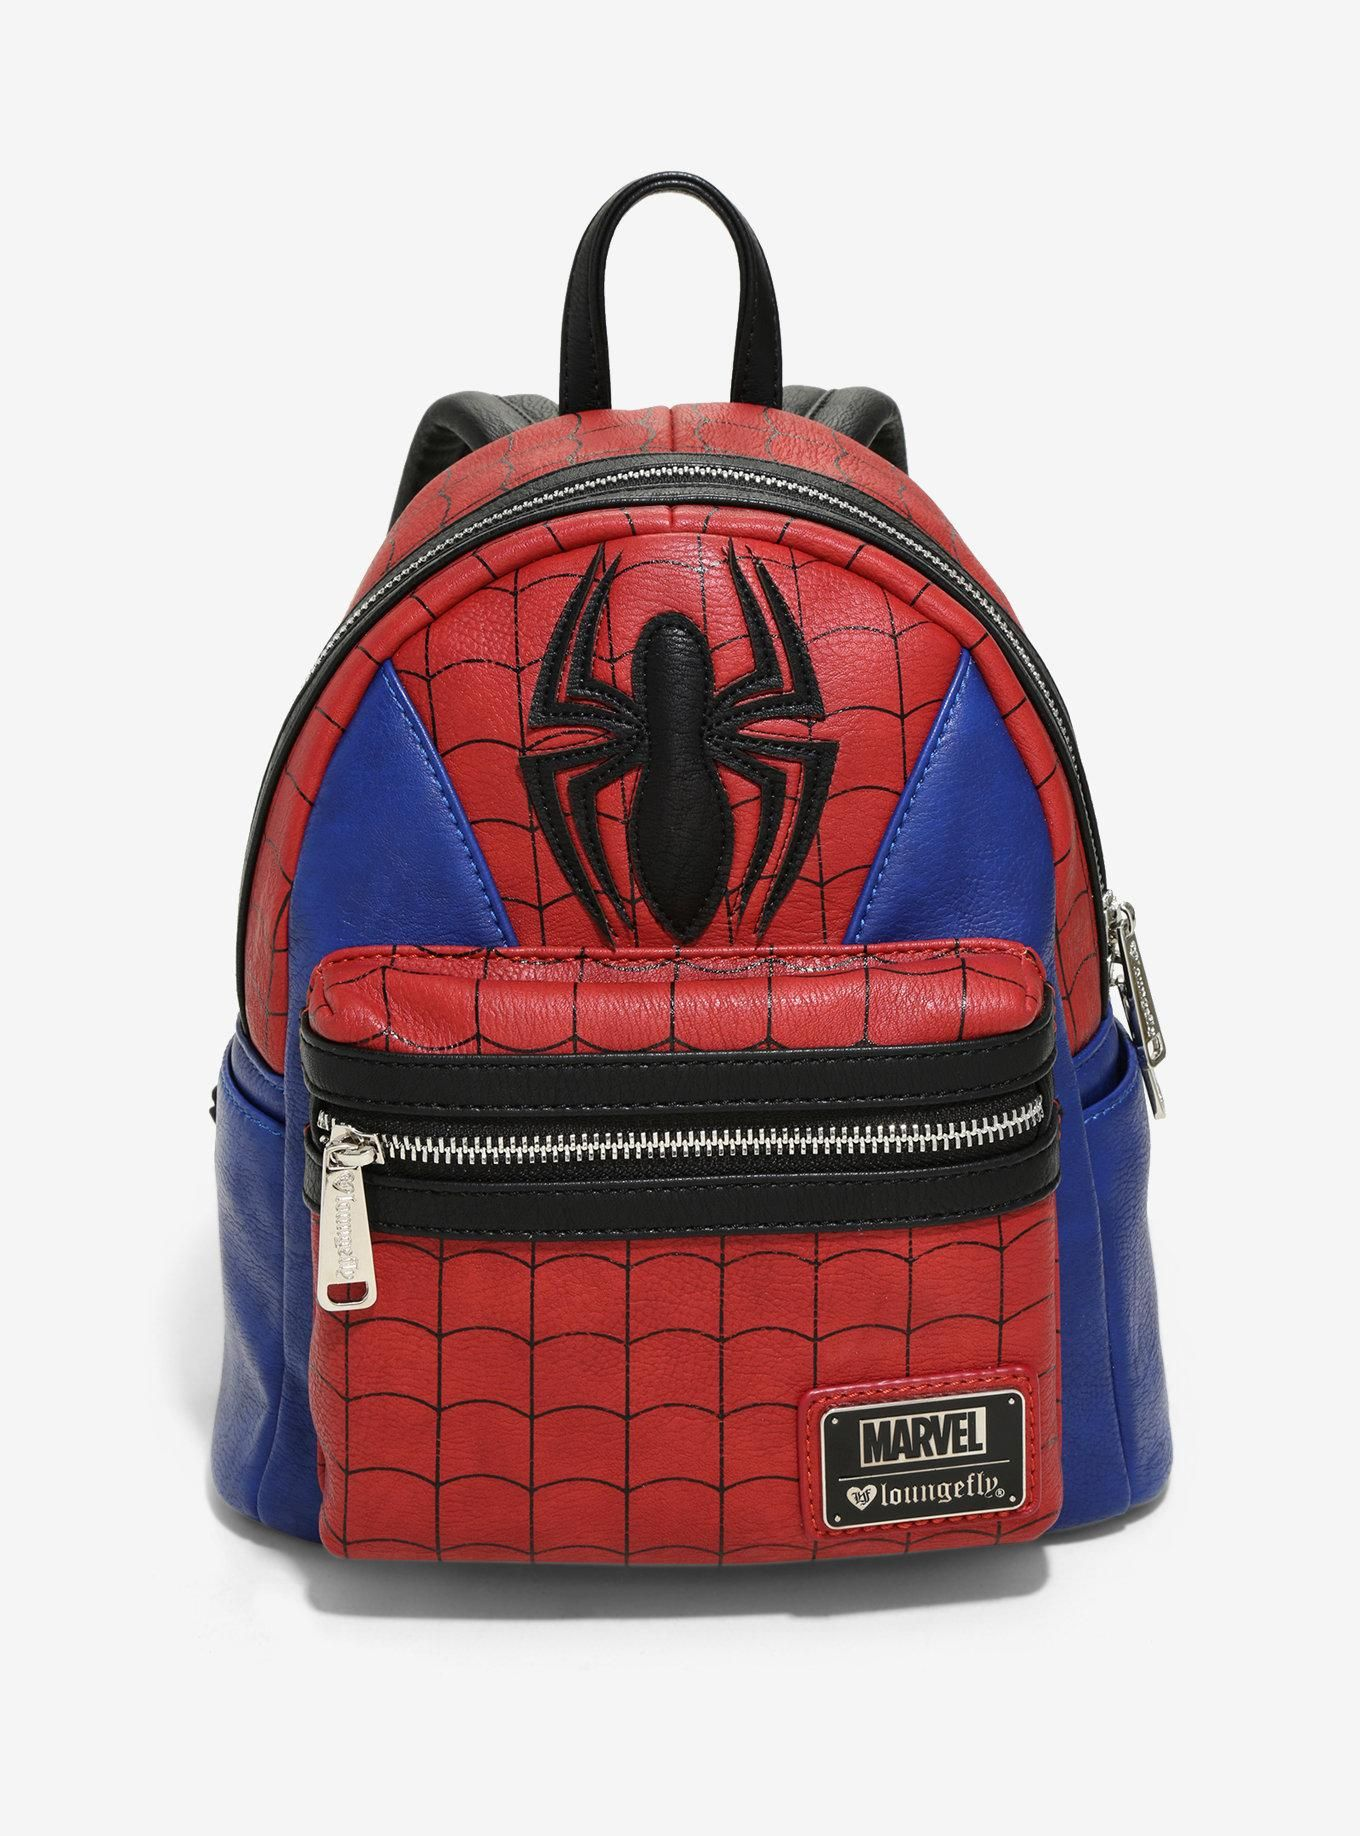 Loungefly Marvel Spider-Man Suit Mini Backpack  10e4c0c24d8b9